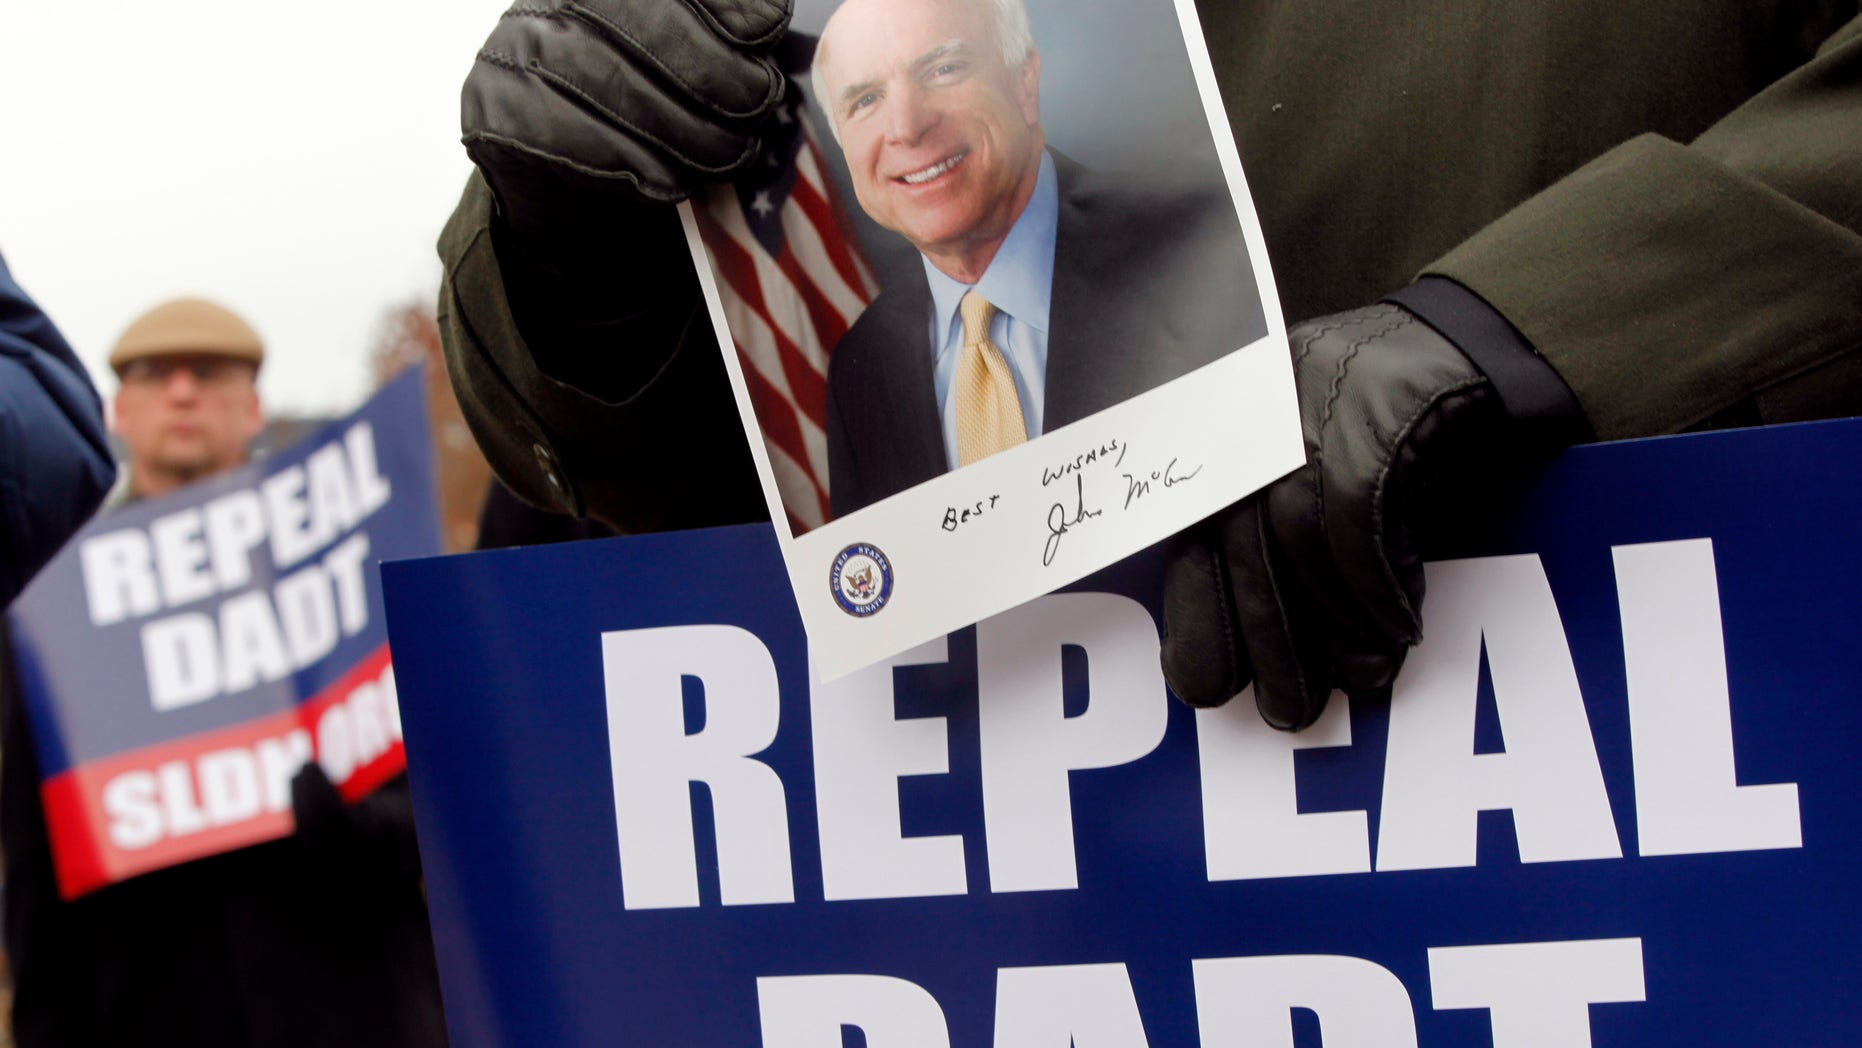 """A supporter of a bill to overturn the military's """"don't ask, don't tell"""" policy holds up a portrait of Sen. John McCain, R-Ariz., who opposes the amendment to repeal the military's 17-year-old ban on openly gay troops, Friday, Dec. 10, 2010, during a rally on Capitol Hill in Washington. (AP)"""